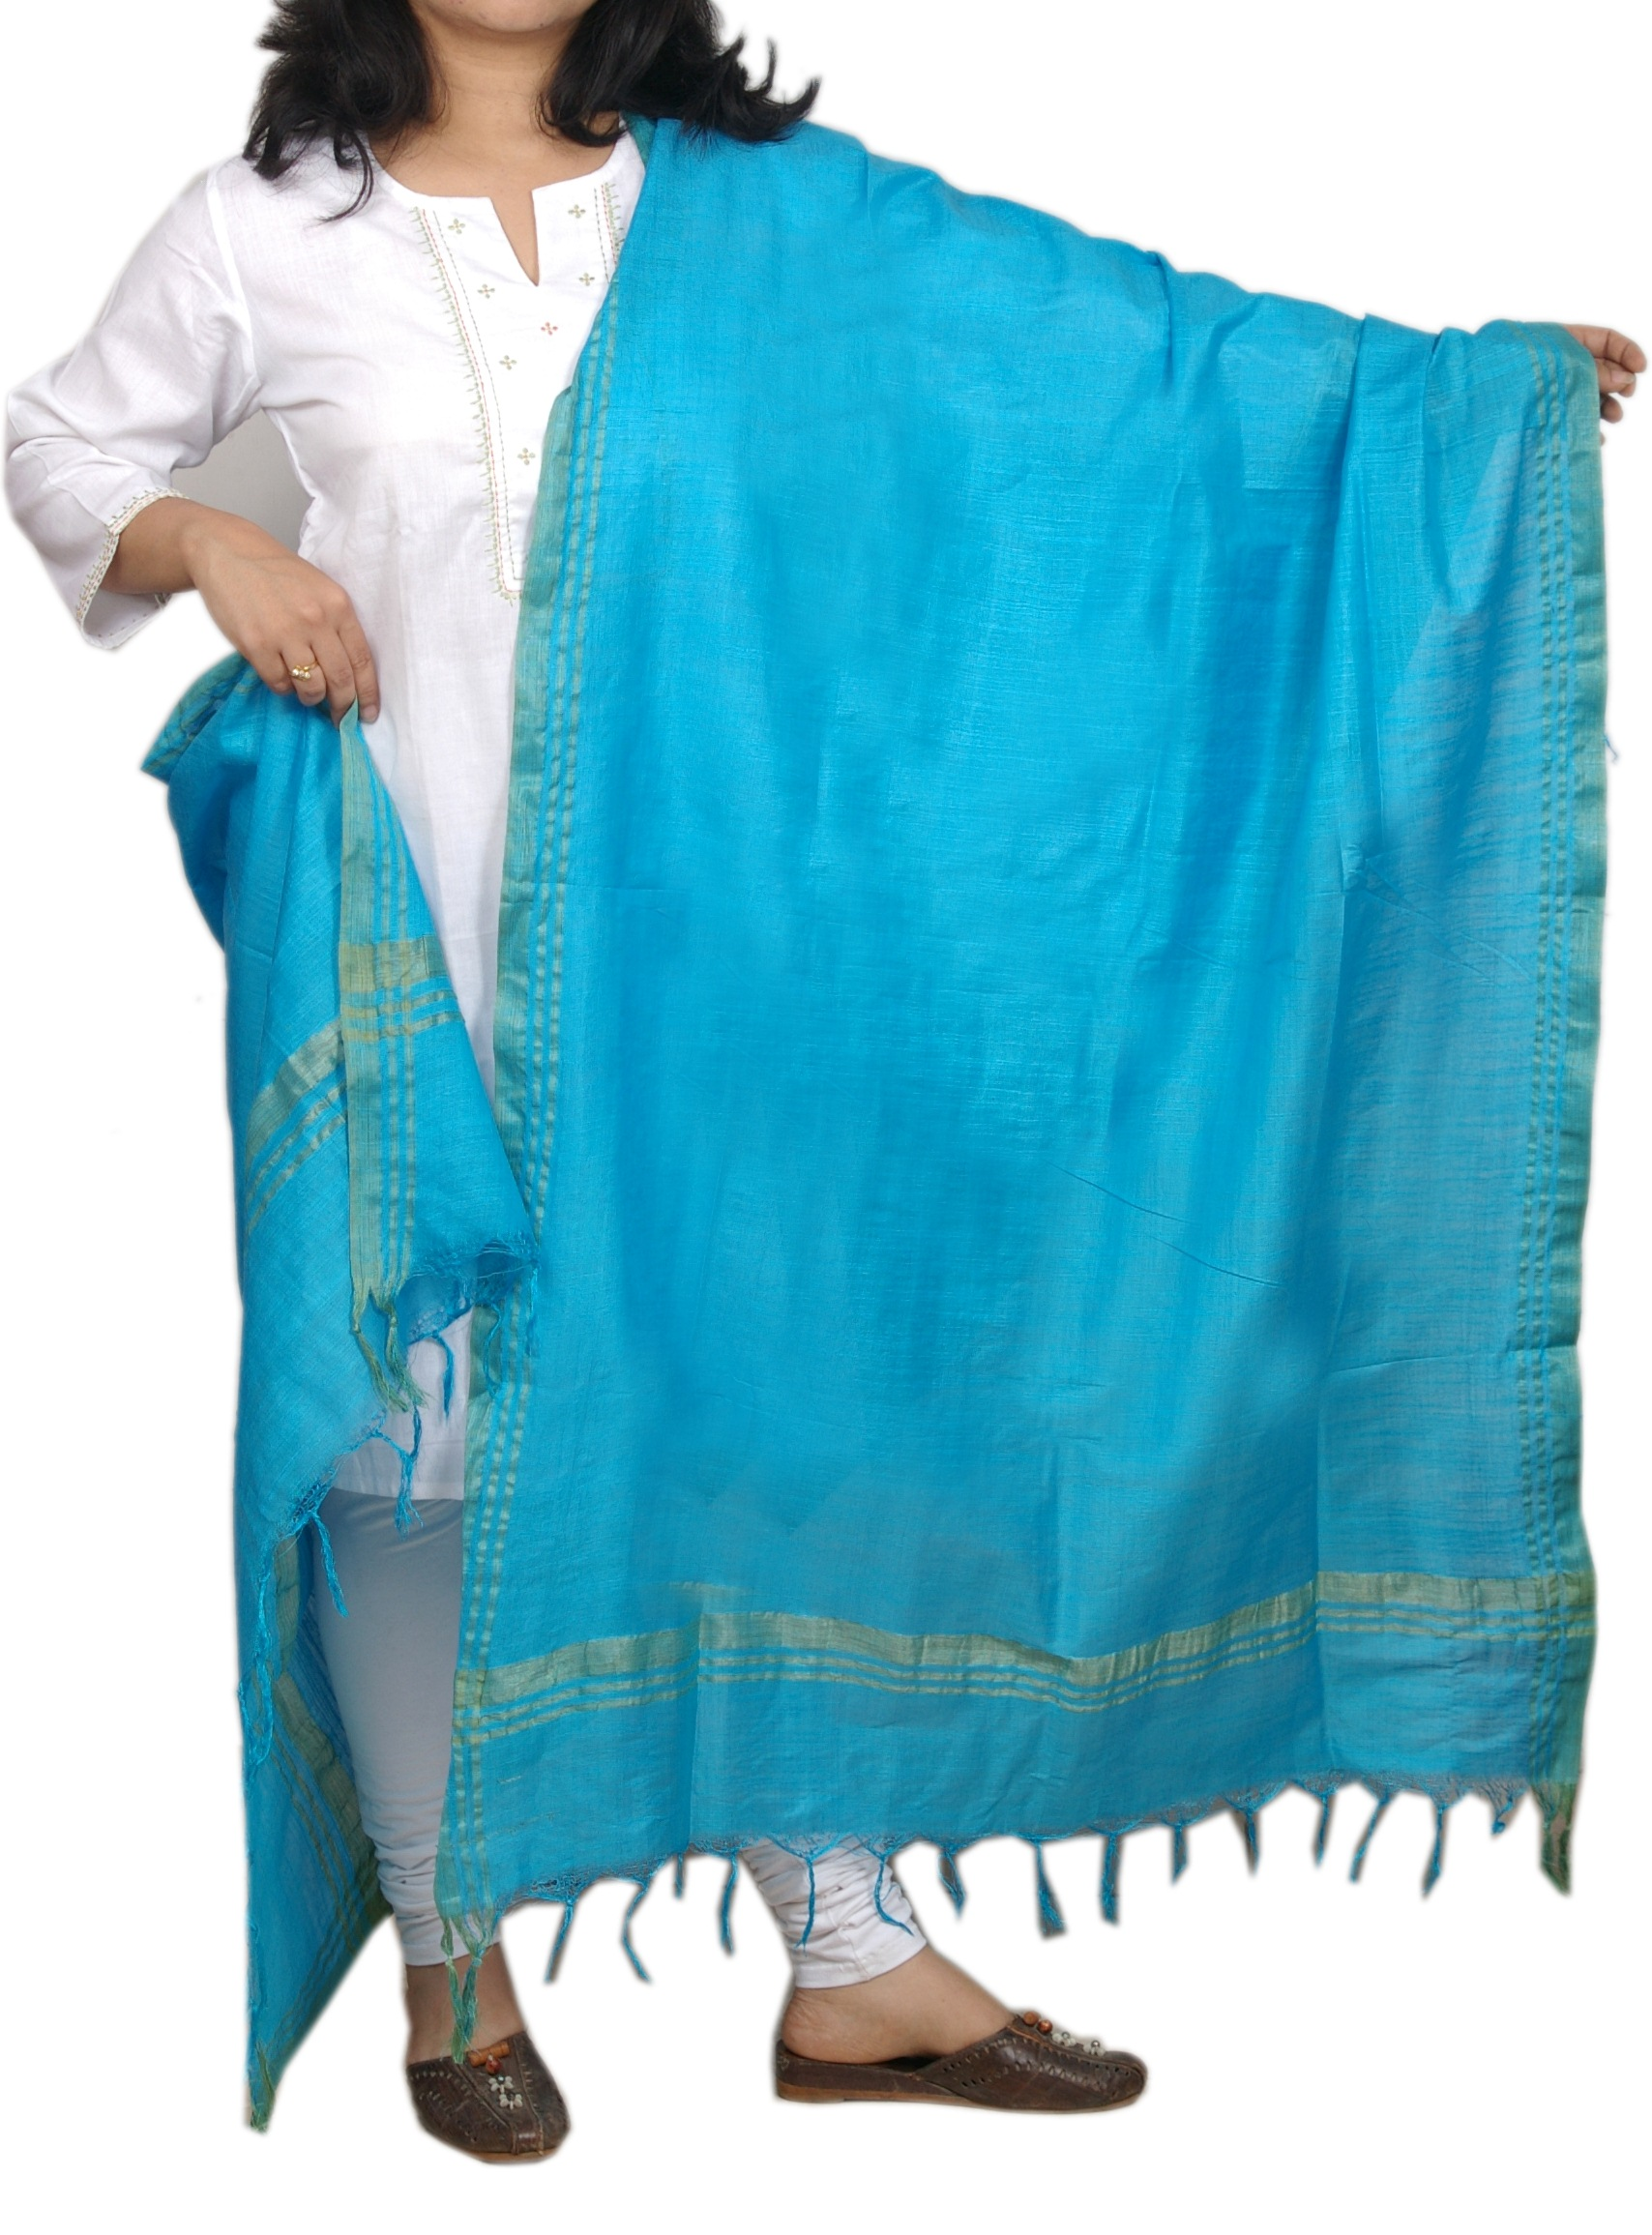 Silk Dupattas, Dupattas, Womens Wear, Indian Concepts, Sea Blue Cotton Silk Dupatta